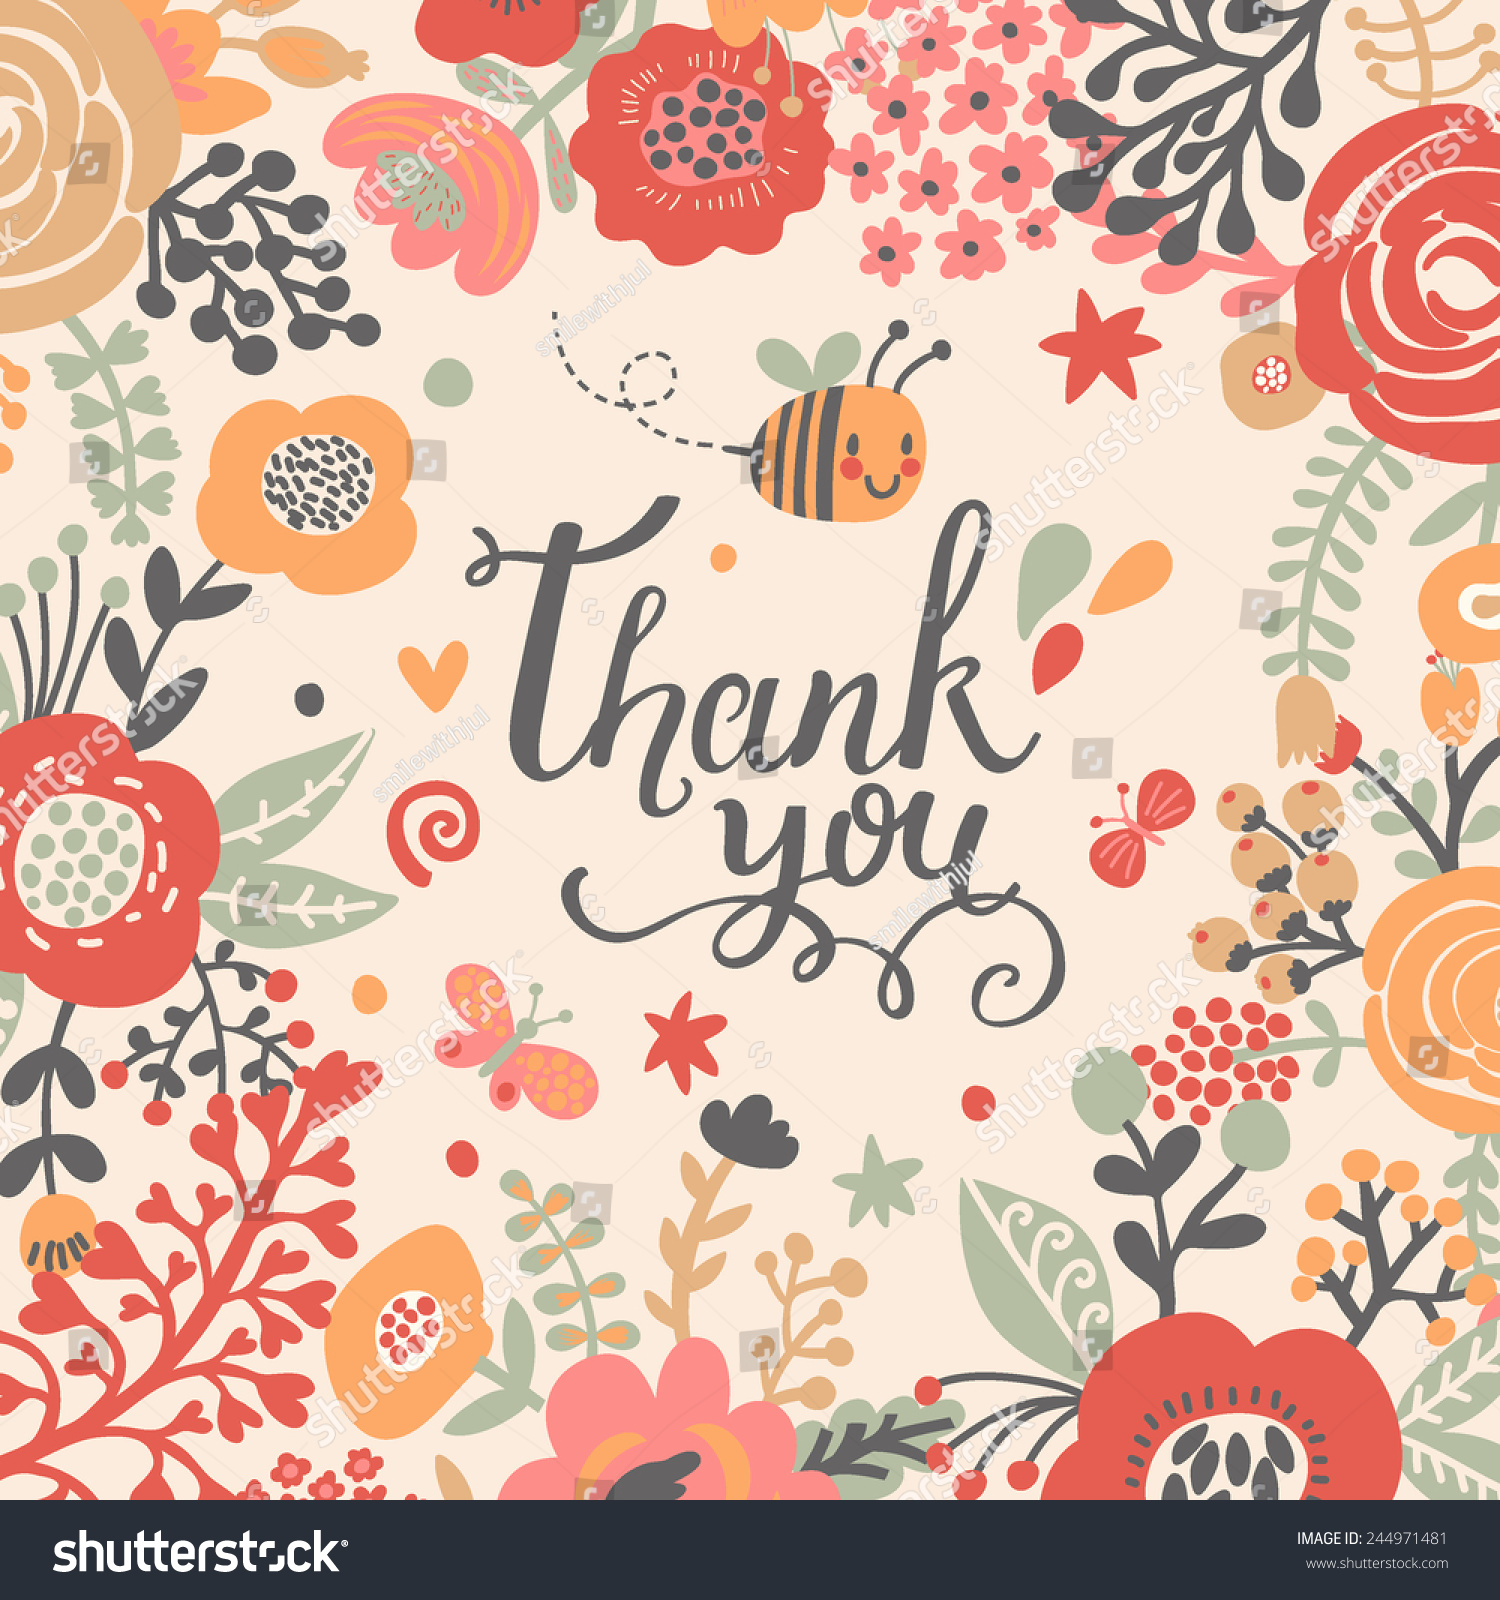 cute thank you backgrounds wwwpixsharkcom images